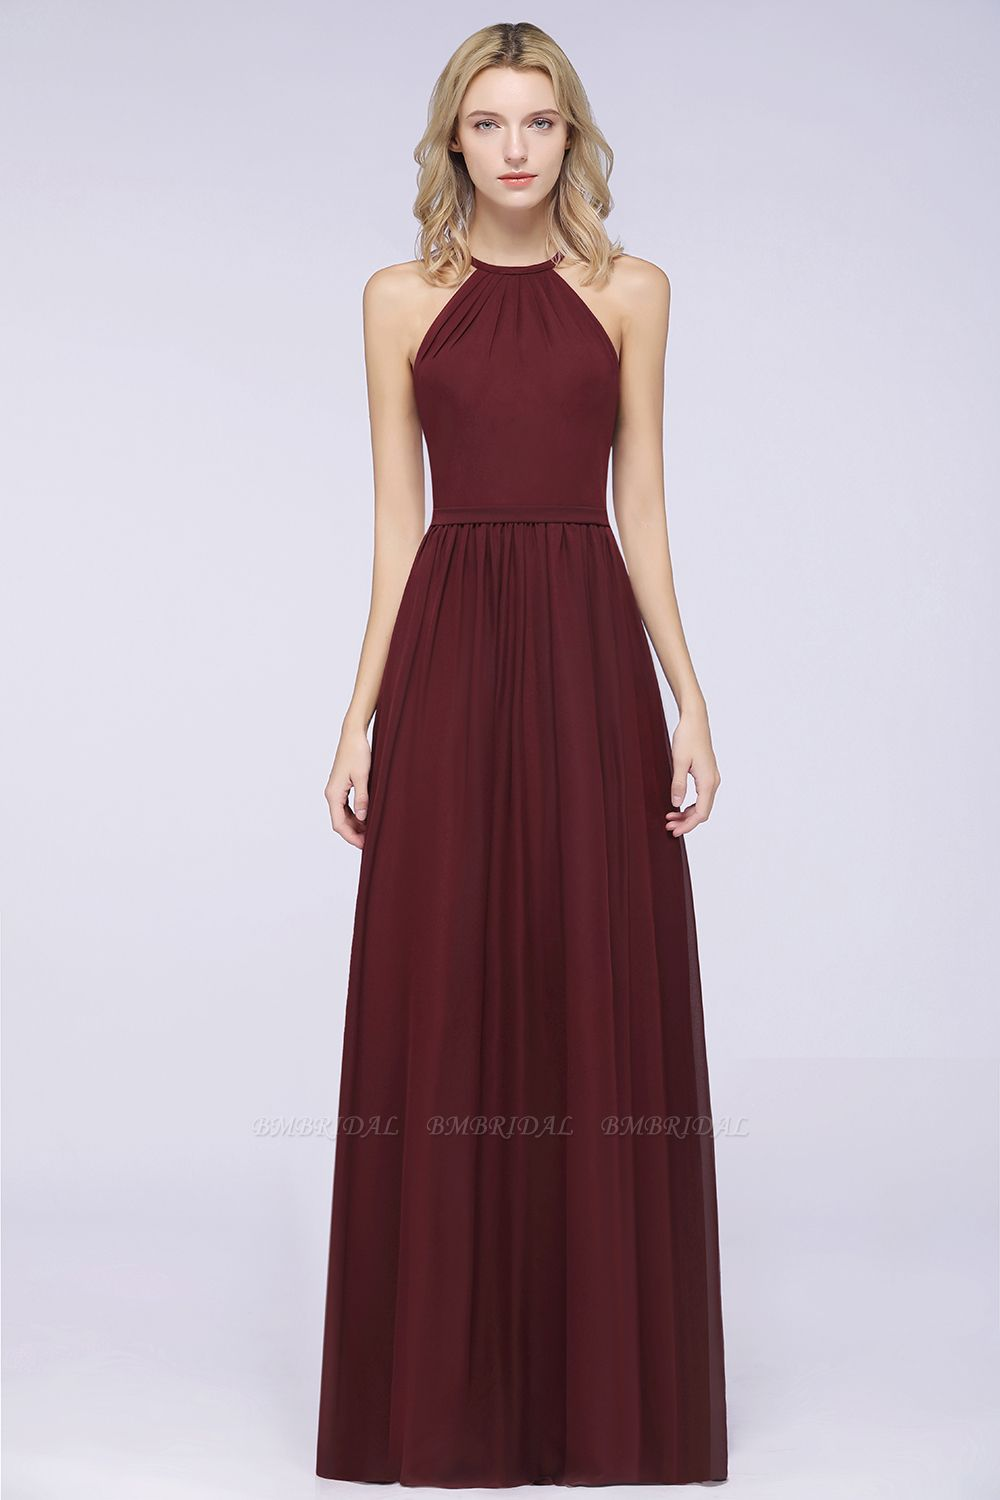 Affordable Halter Sleeveless Long Burgundy Bridesmaid Dress with Ruffle